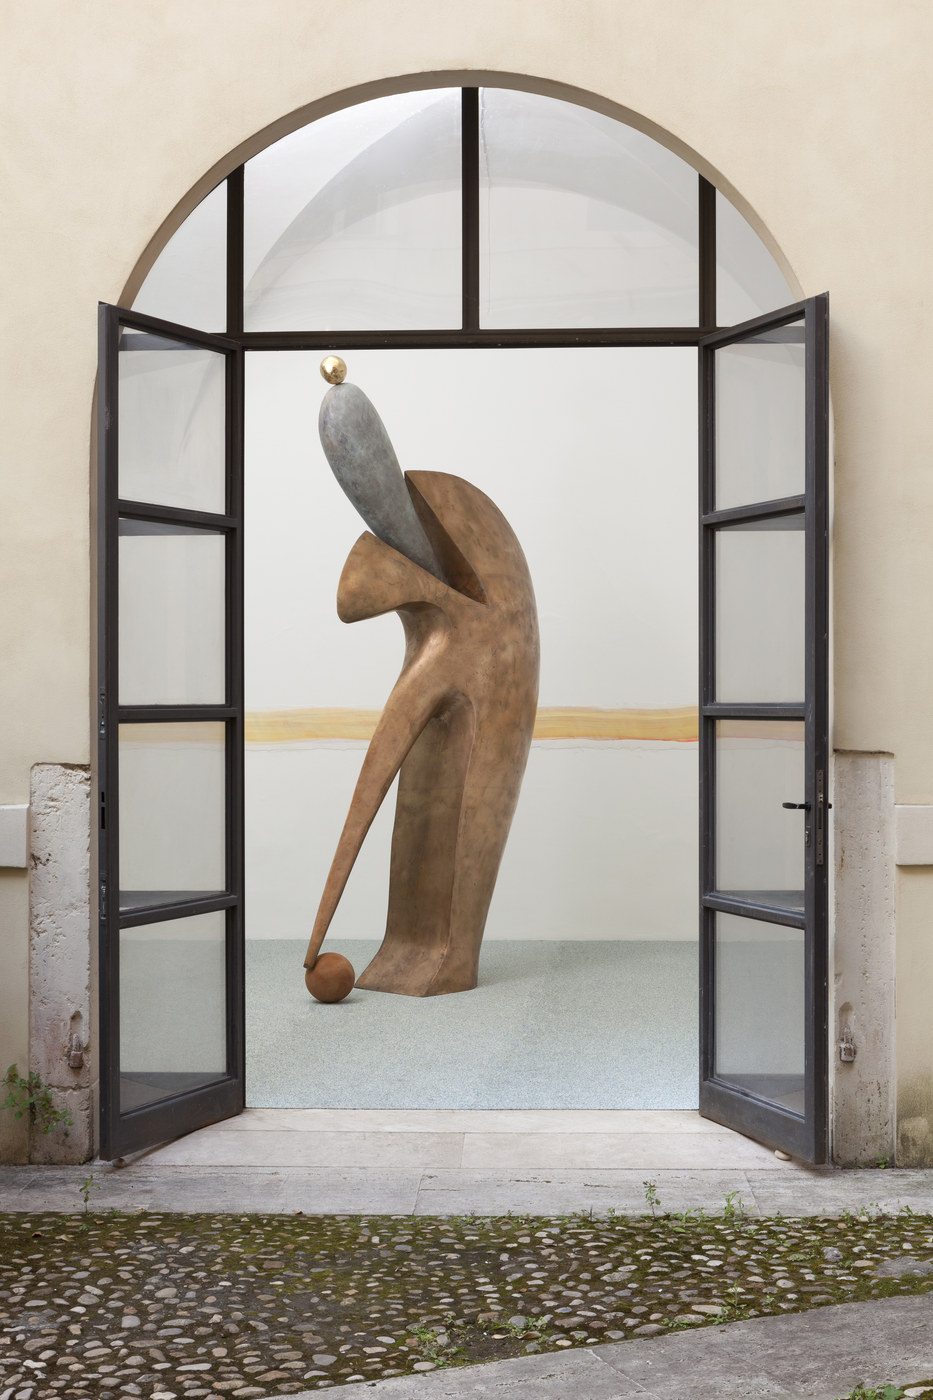 23. Camille Henrot, Monday. Installation view, Fondazione Memmo, Rome, 2016jpg